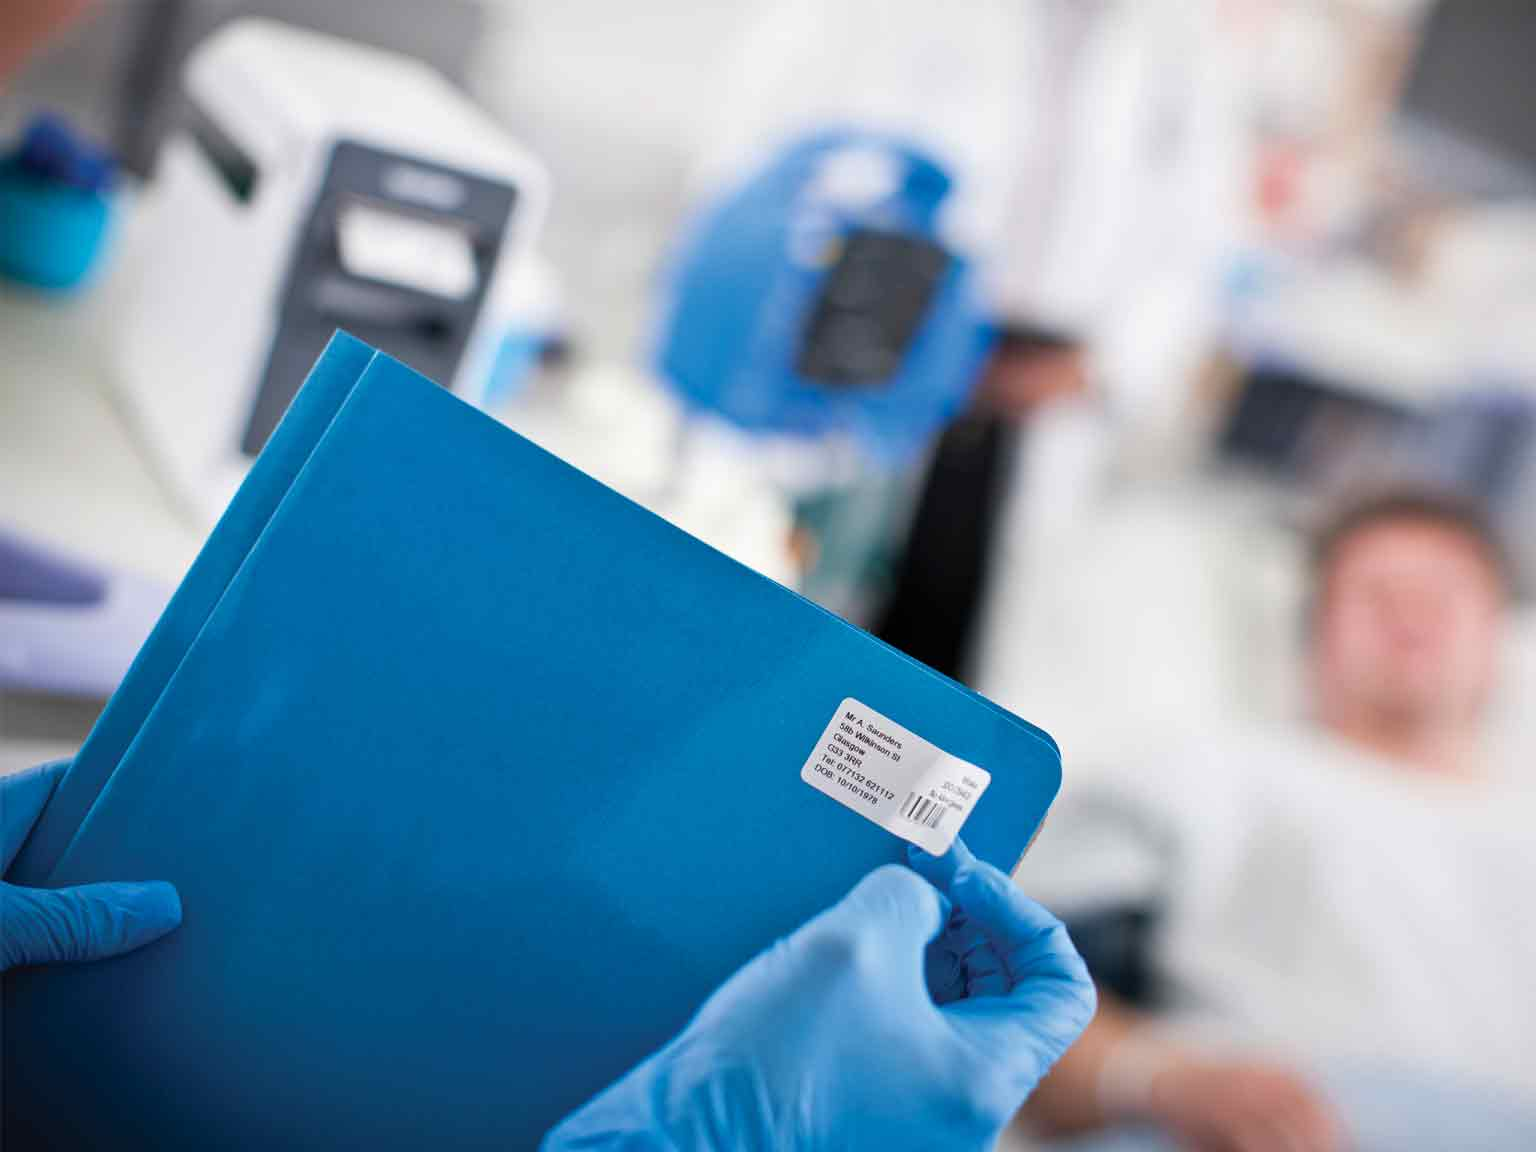 A doctor placing a label on a patient's file